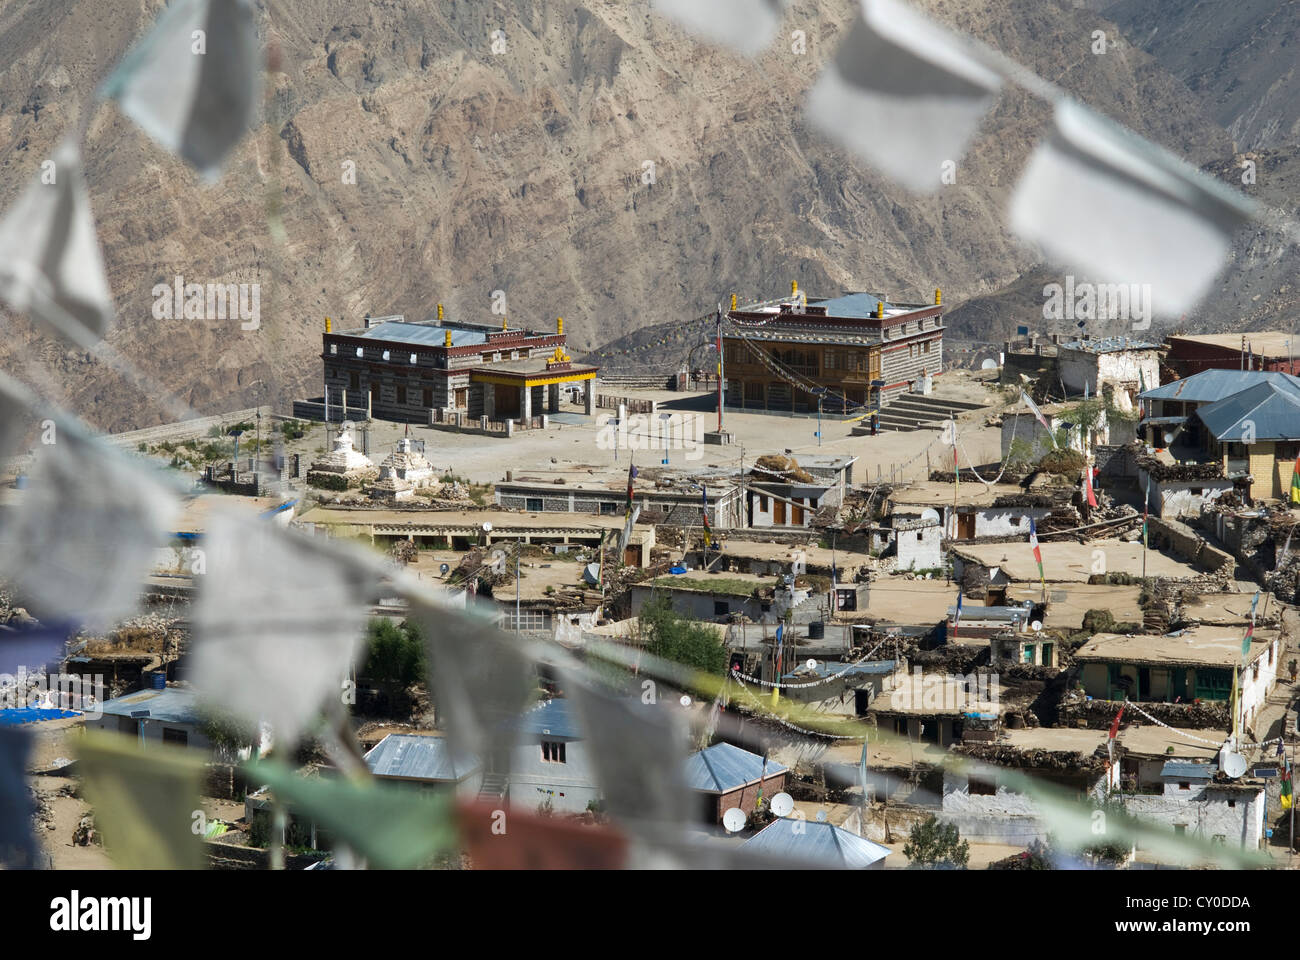 Prayerflags from a hilltop shrine frame Nako Monastery in the Kinnaur district of Northern India - Stock Image